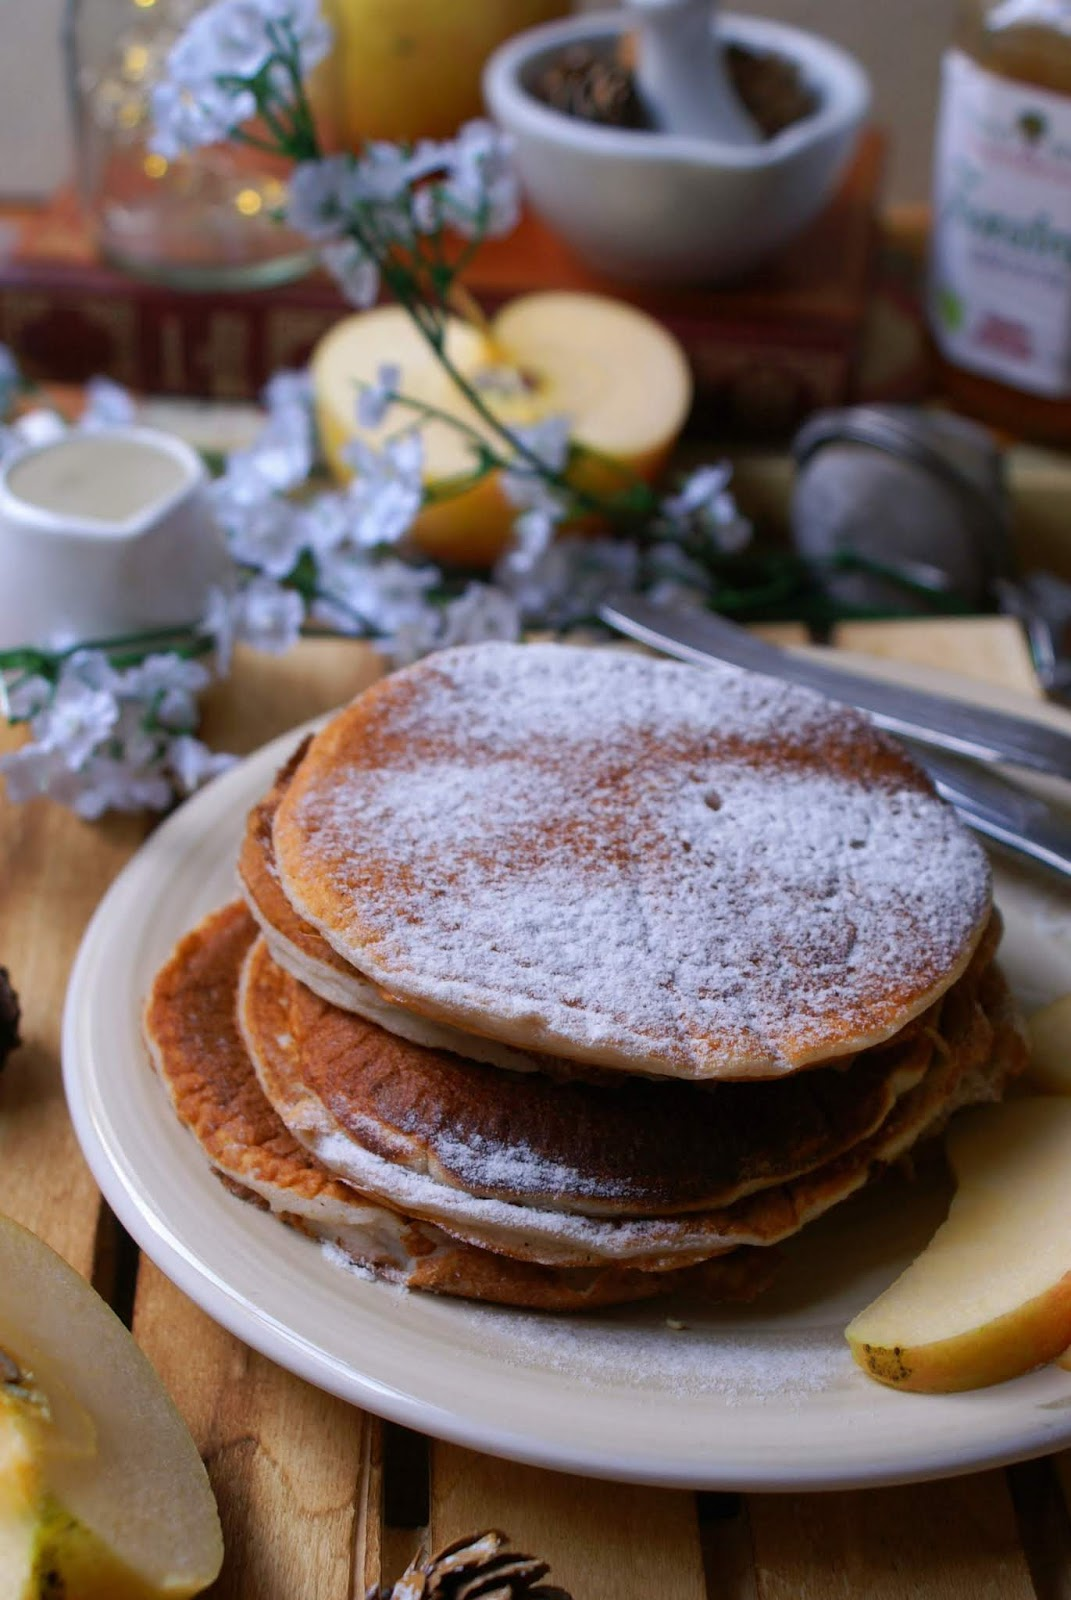 Pancake integrals of egg whites without gluten